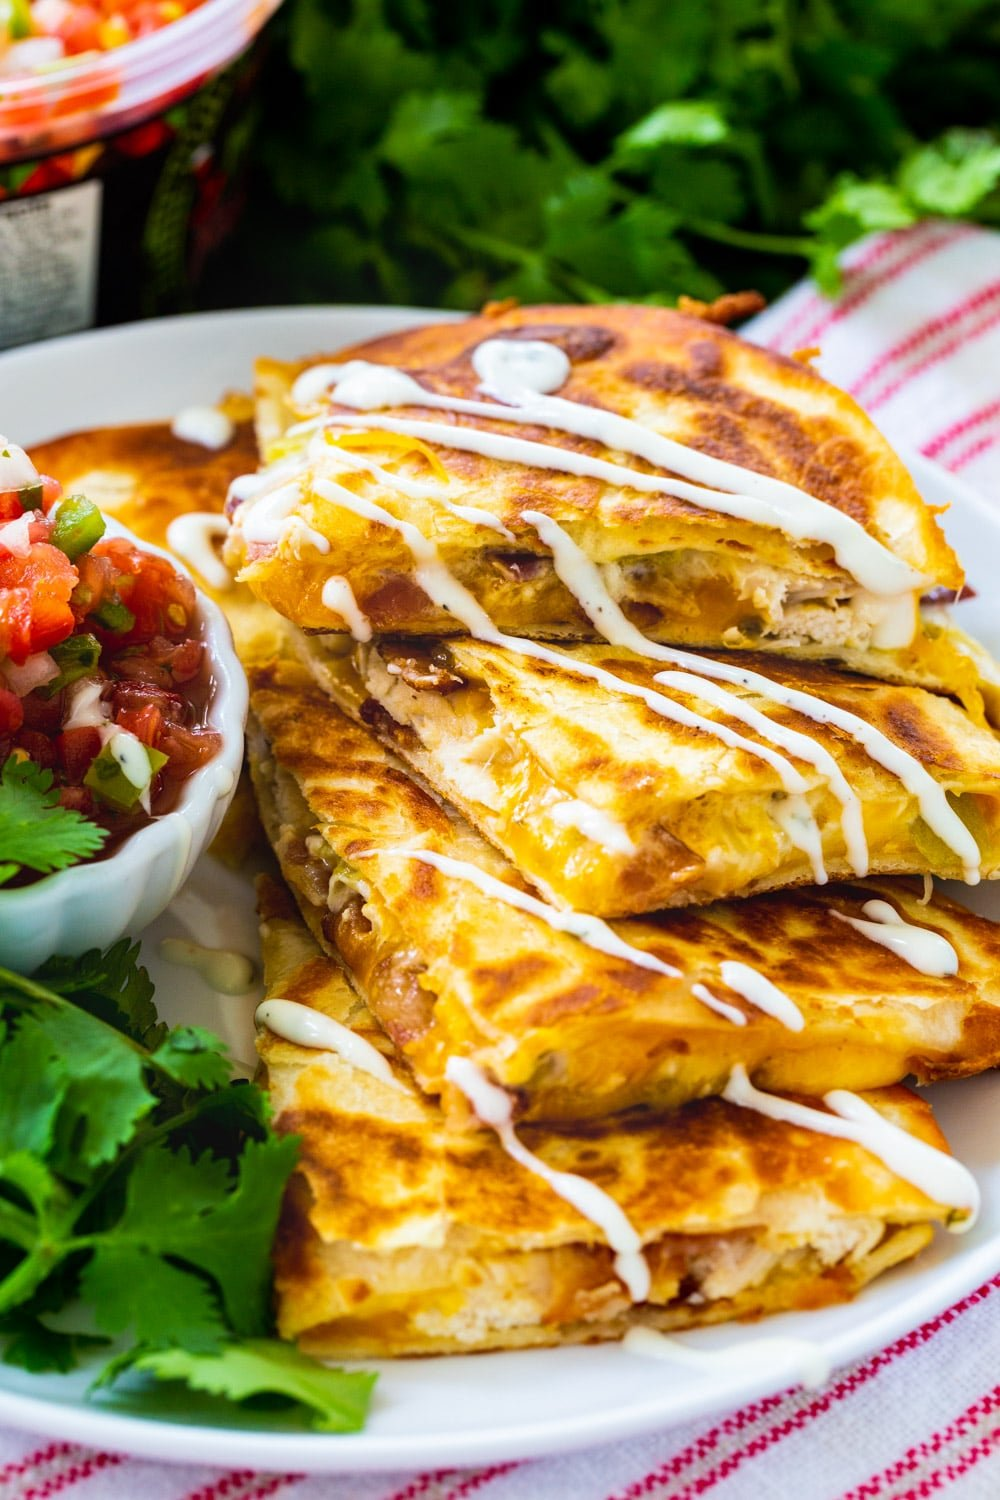 Chicken, Bacon and Ranch Quesadillas drizzle with ranch on a plate.